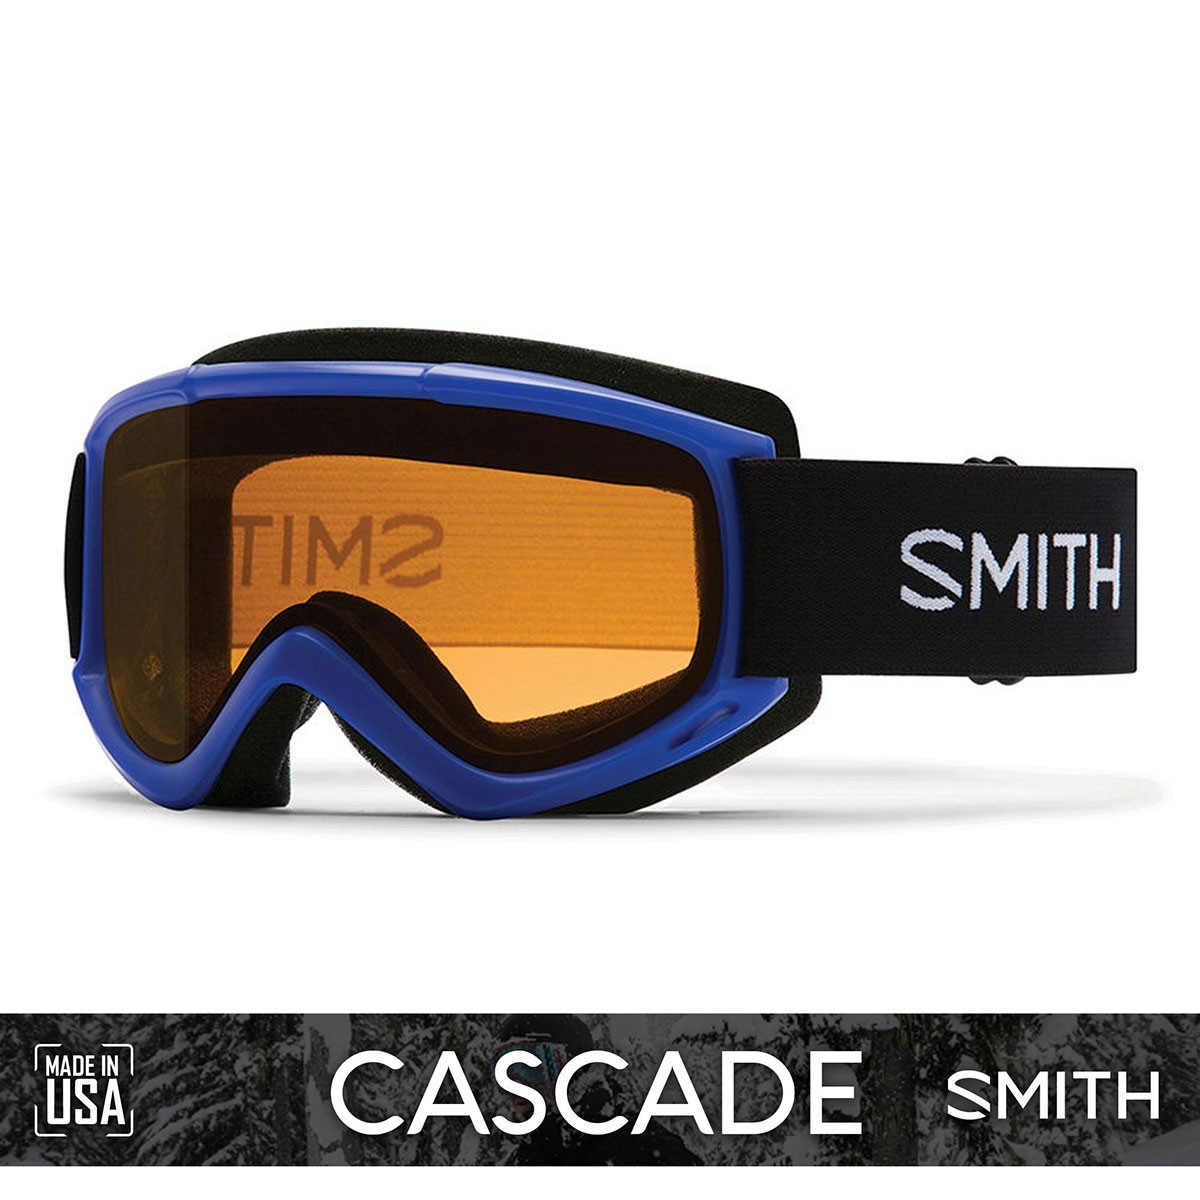 SMITH CASCADE Cobalt | S2 GOLD Lite - Изображение - AQUAMATRIX